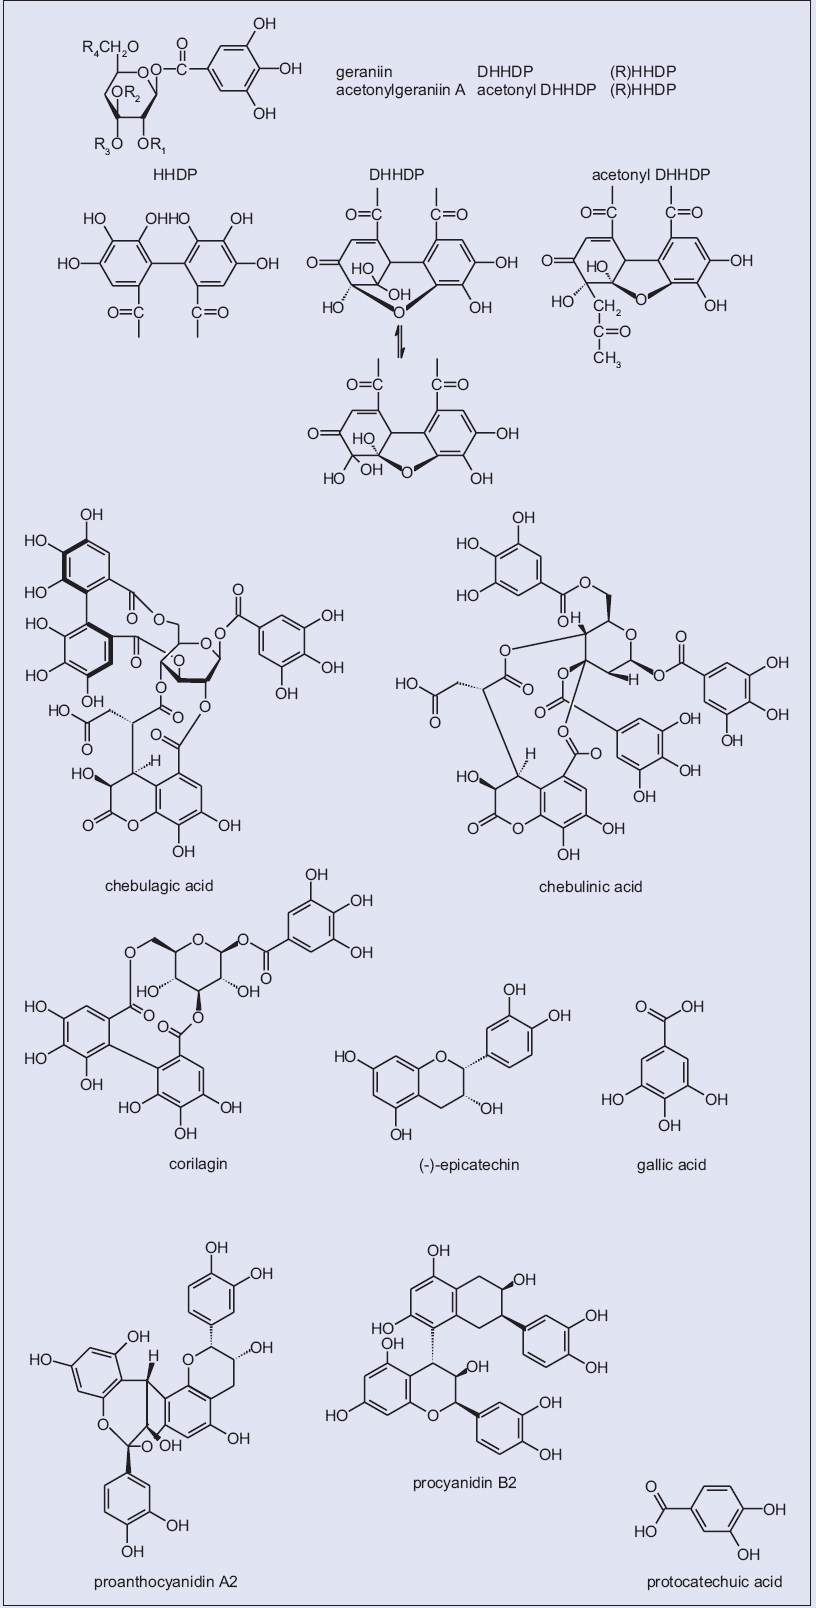 Figure 1: Chemical structures of typical constituents isolated from <i>Dimocarpus longan</i> Lour.